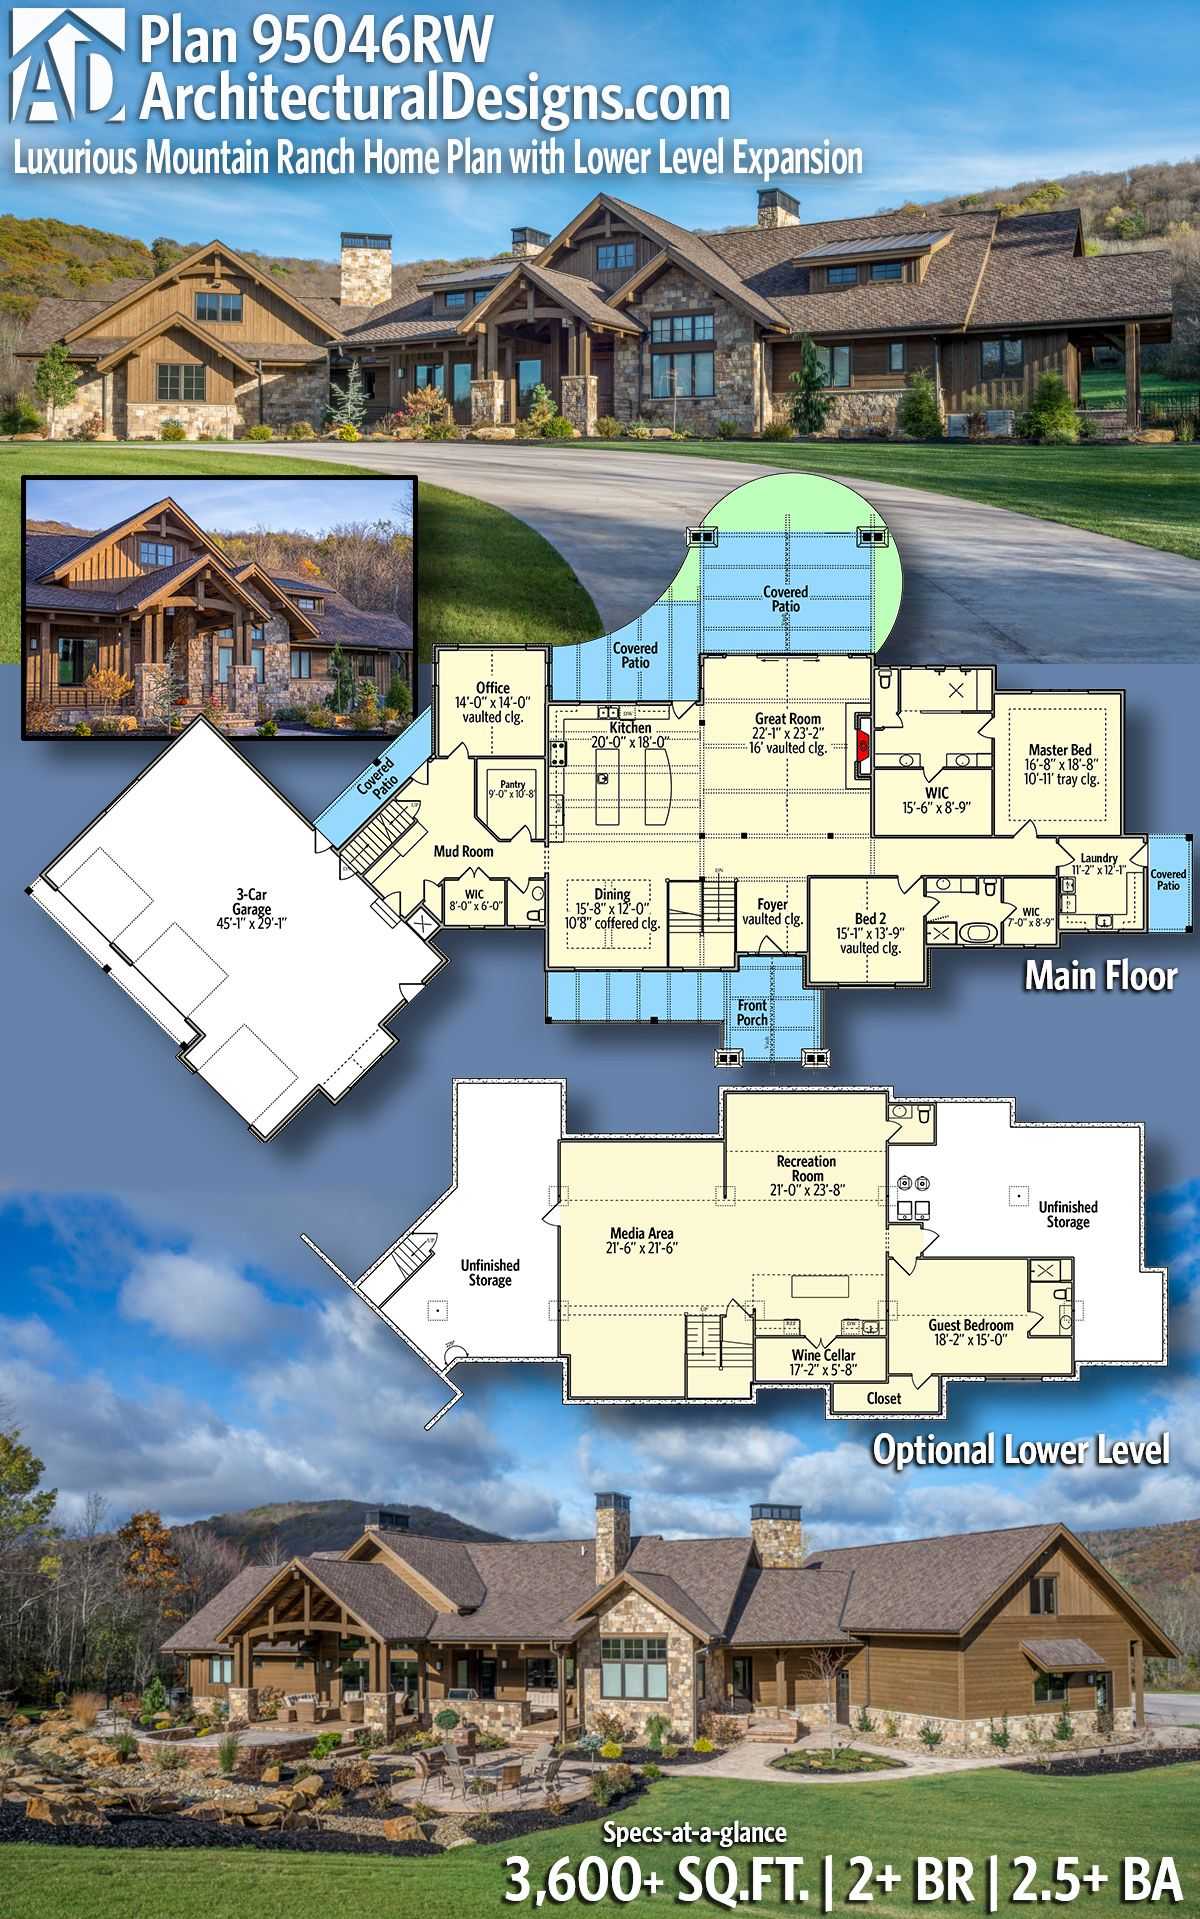 Plan 95046RW: Luxurious Mountain Ranch Home Plan with Lower ... on ranch home plans with front porches, ranch home plans with 2 master suites, ranch home plans with attached garage, ranch home plans with split bedrooms, ranch home plans with open floor plans, ranch home plans with walkout basement,